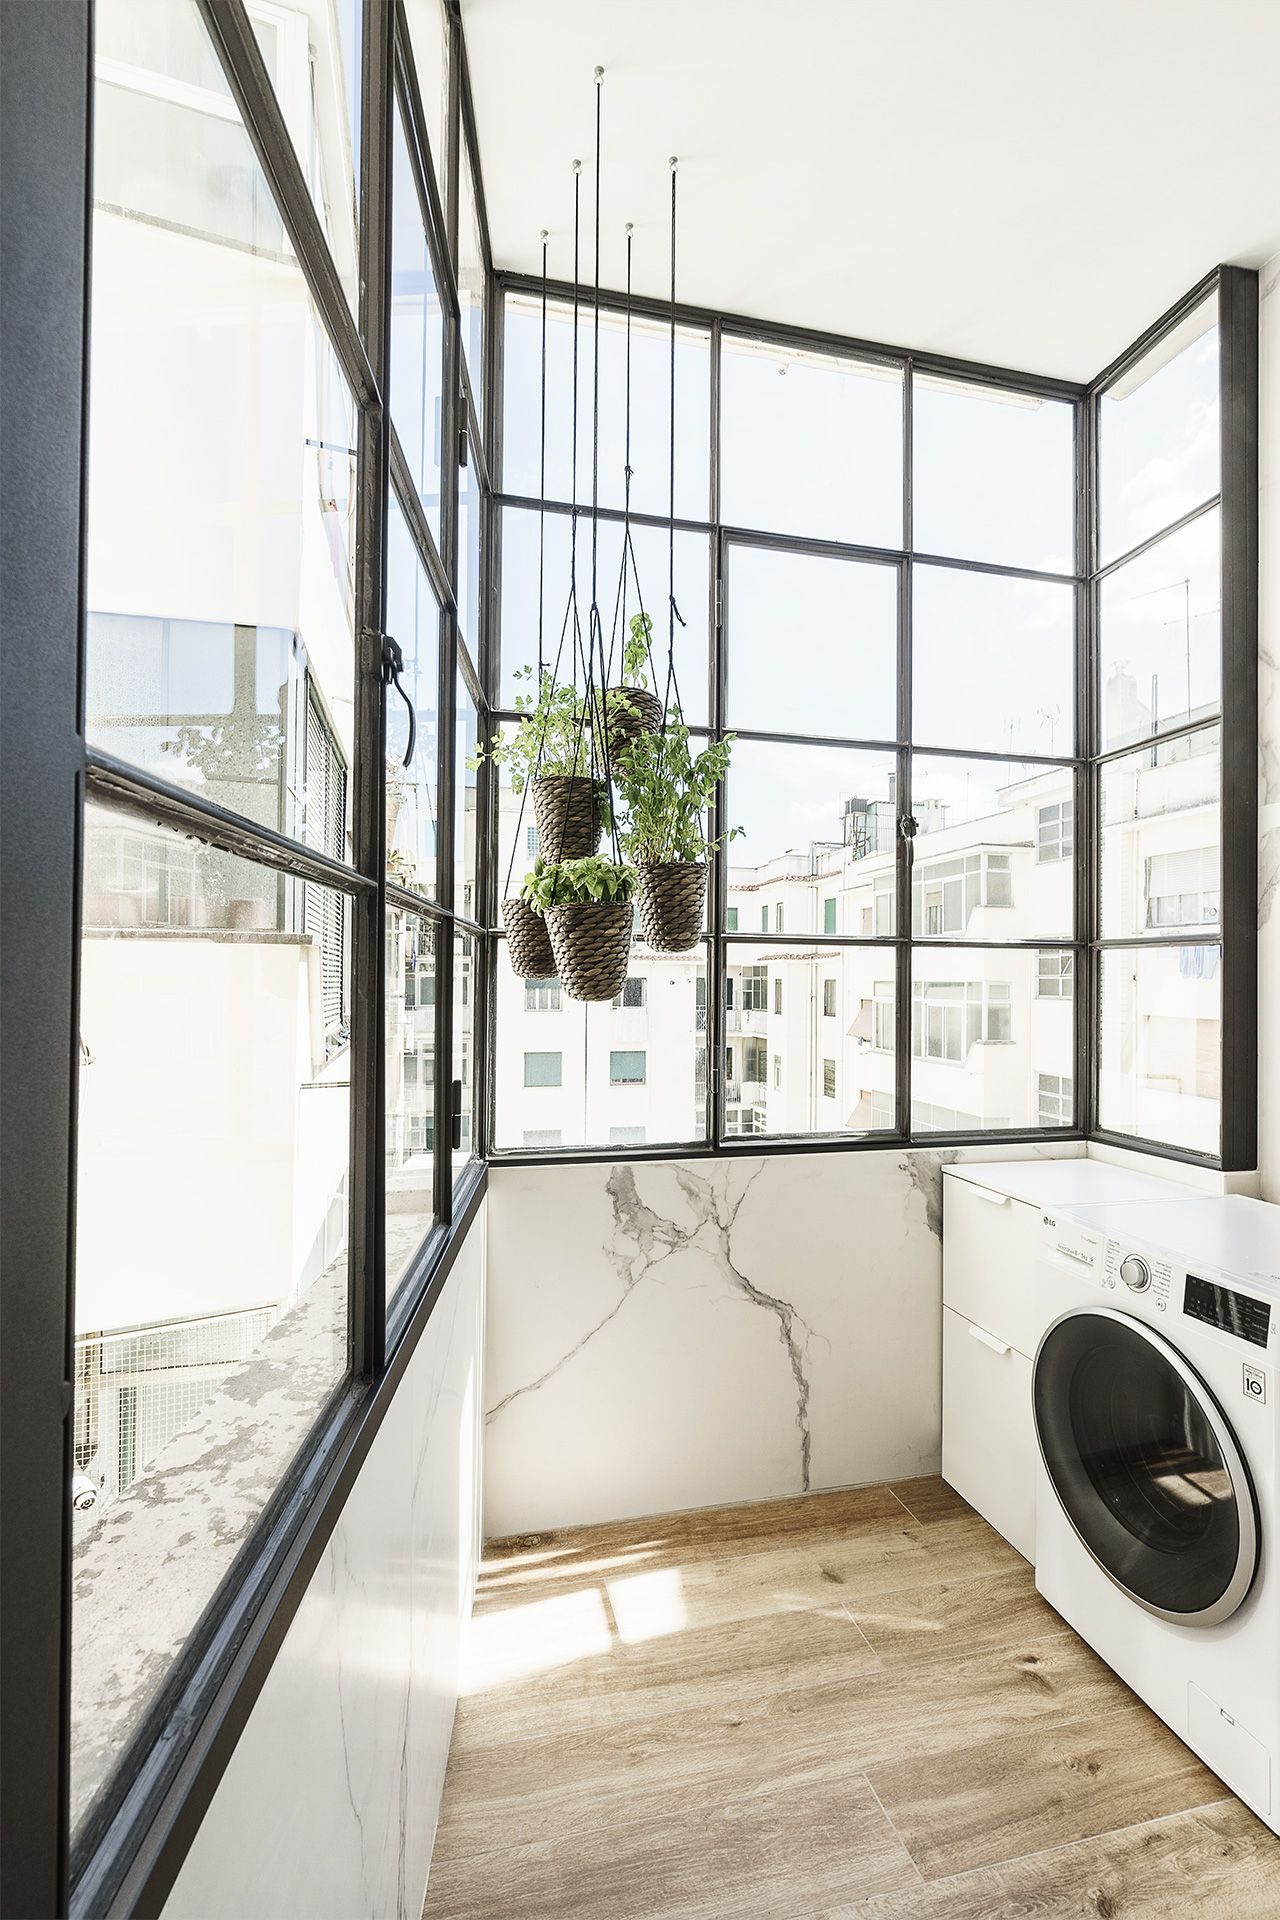 This lovely laundry room is filled with light and greenery as all the rest of the spaces